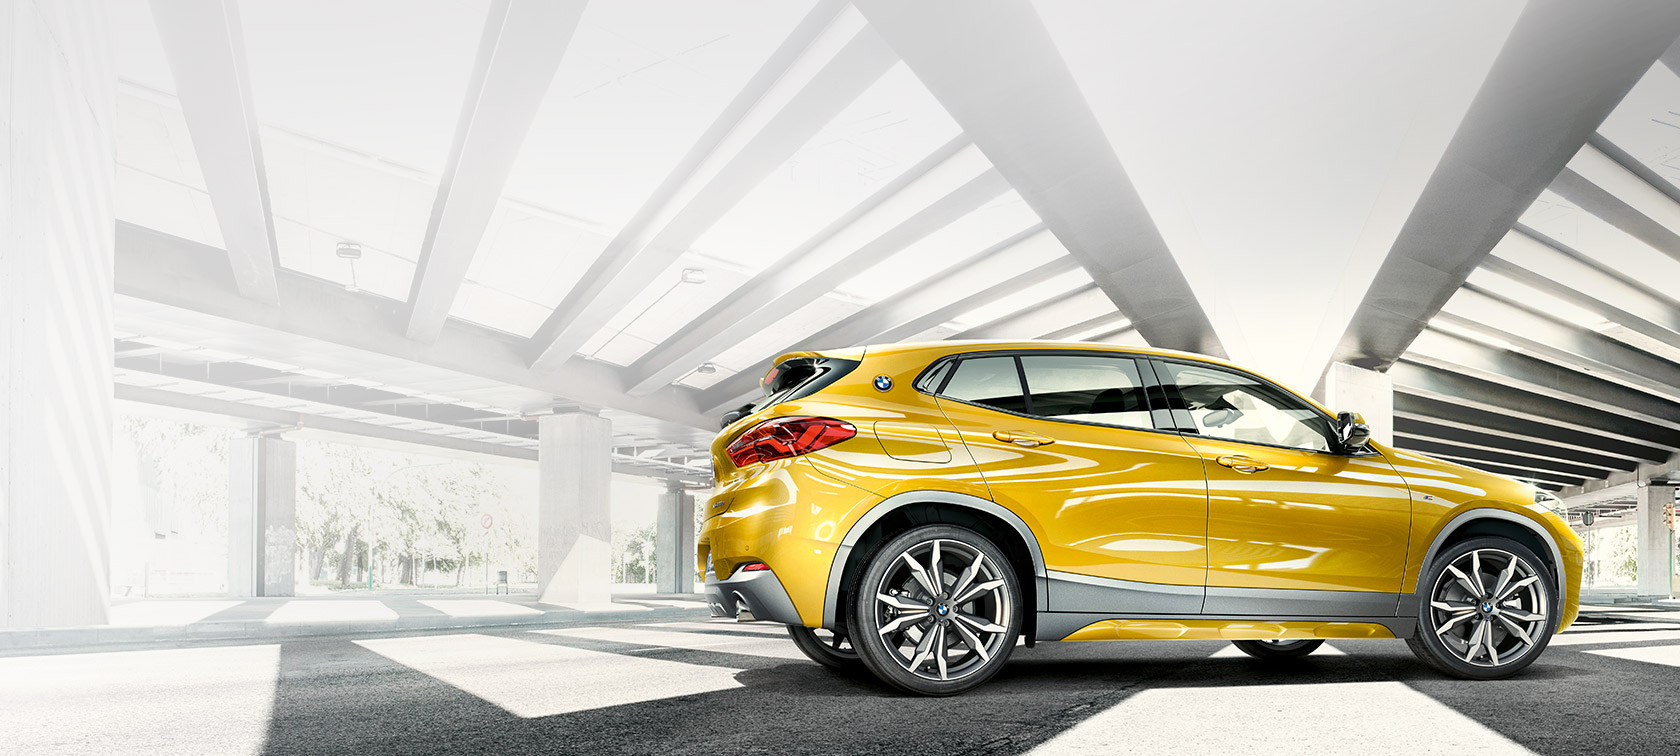 BMW X2 2018 F39 Galvanic Gold metallic side view